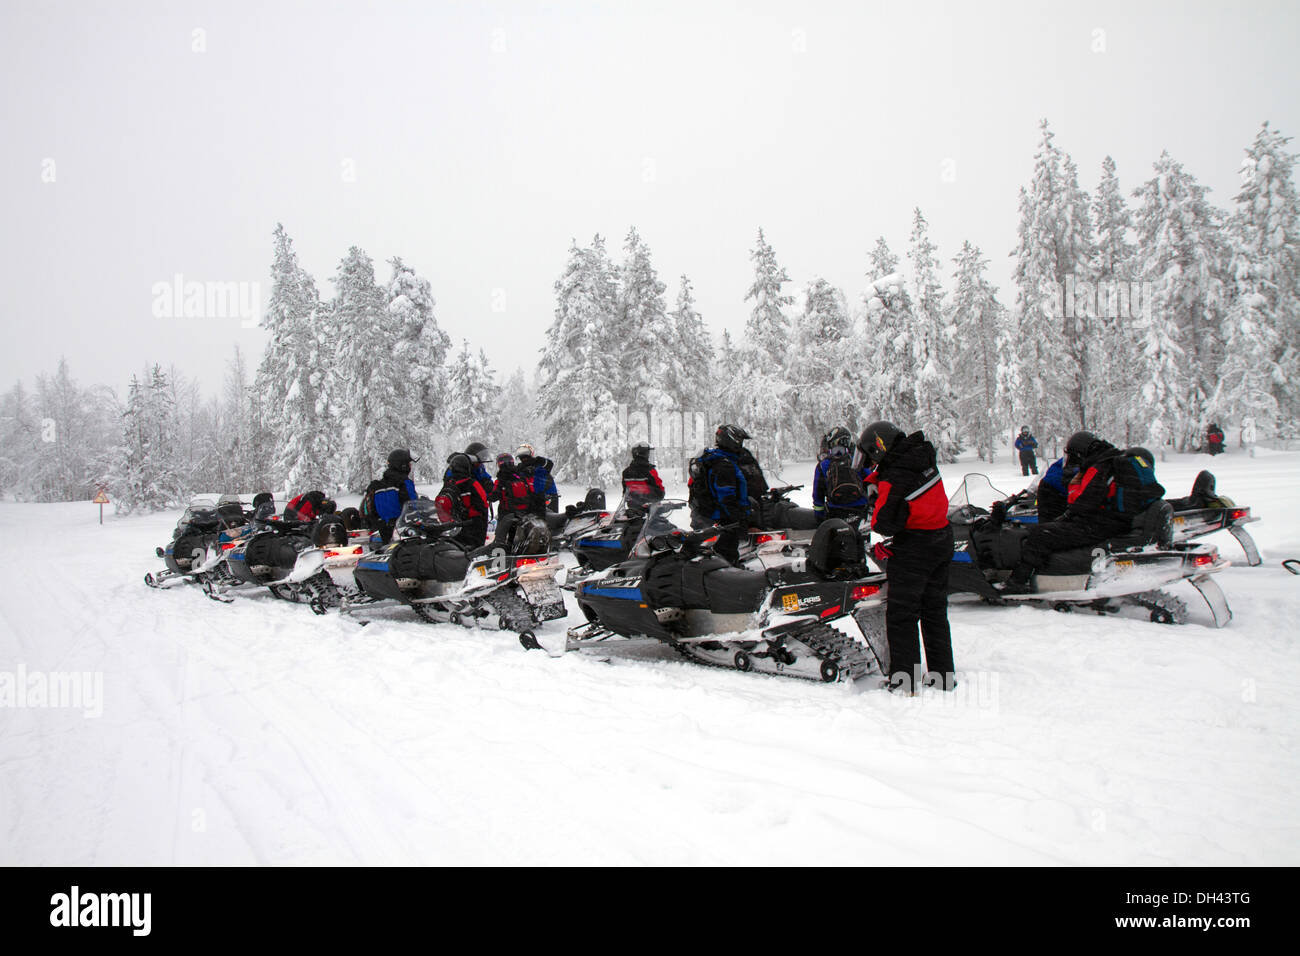 A group of travelles on snowmobiles - Stock Image